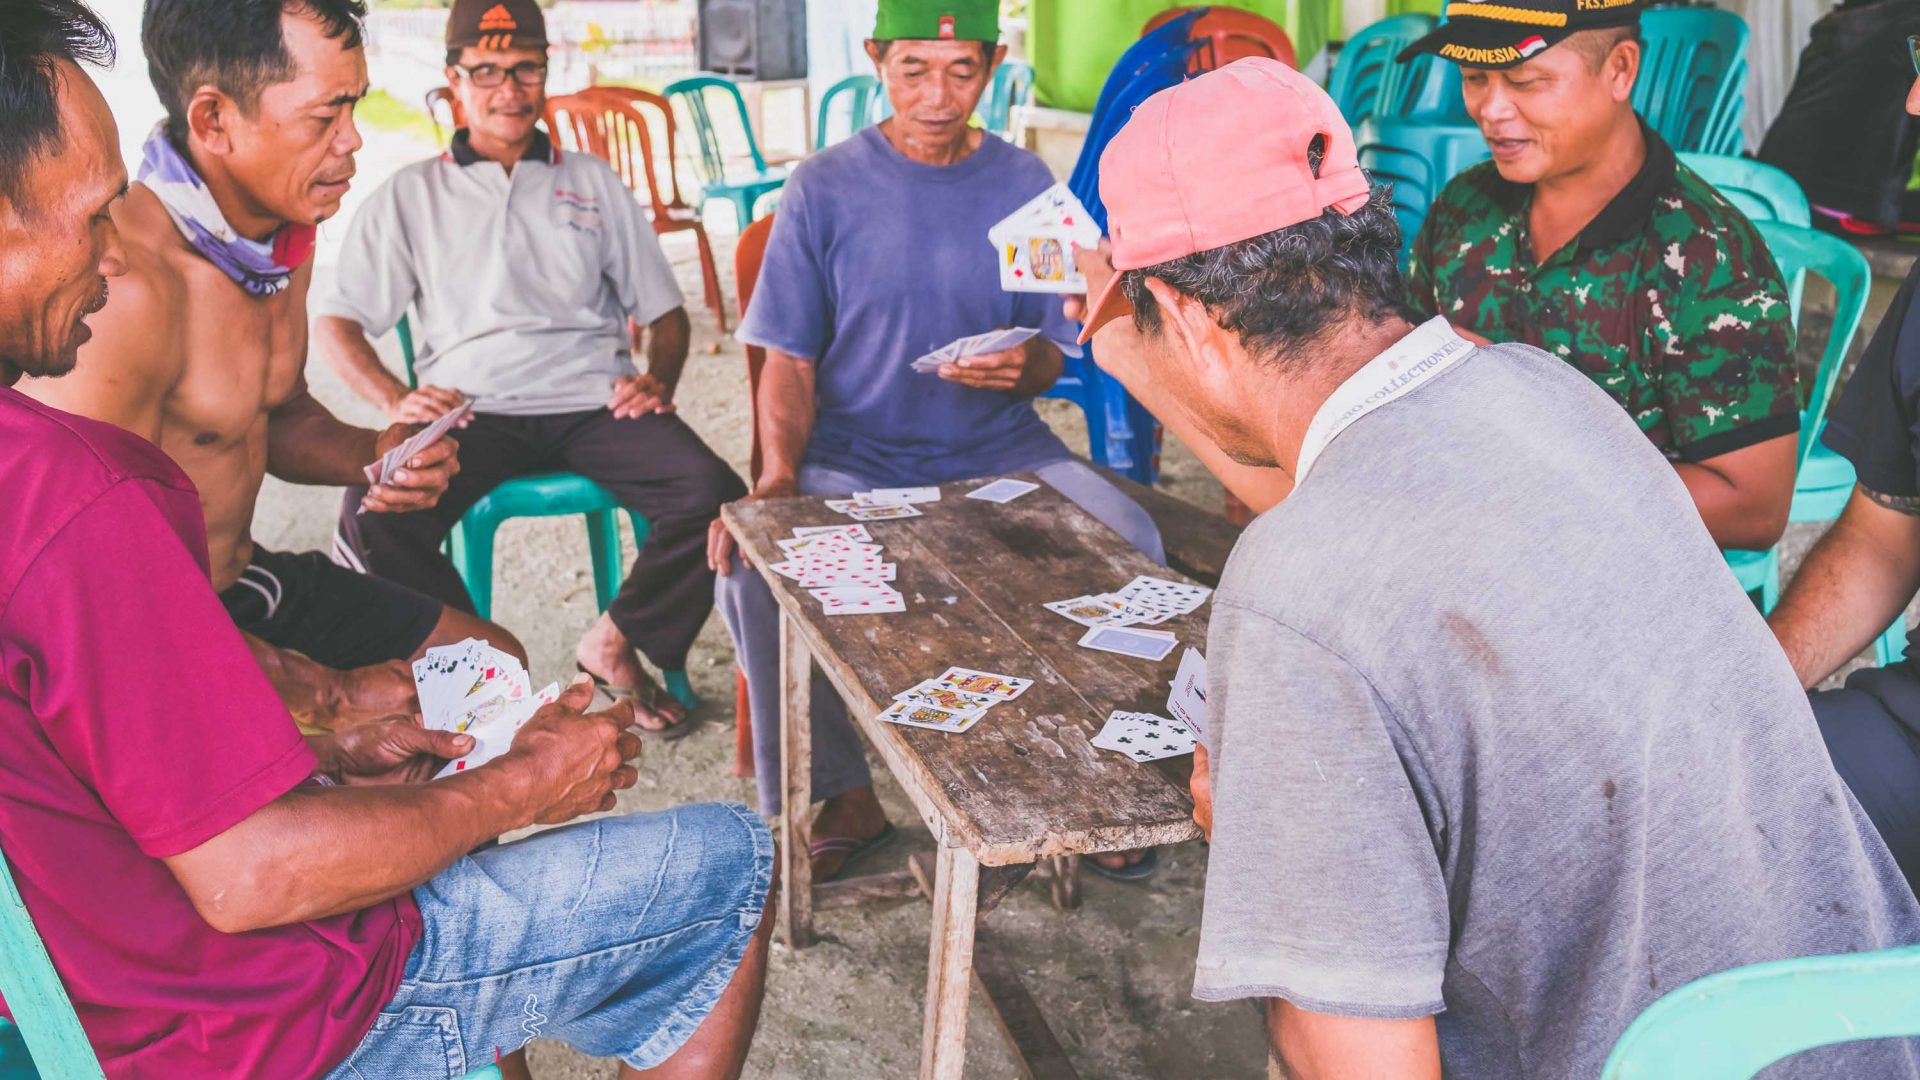 Men play cards in the village of Bancea in Indonesia.